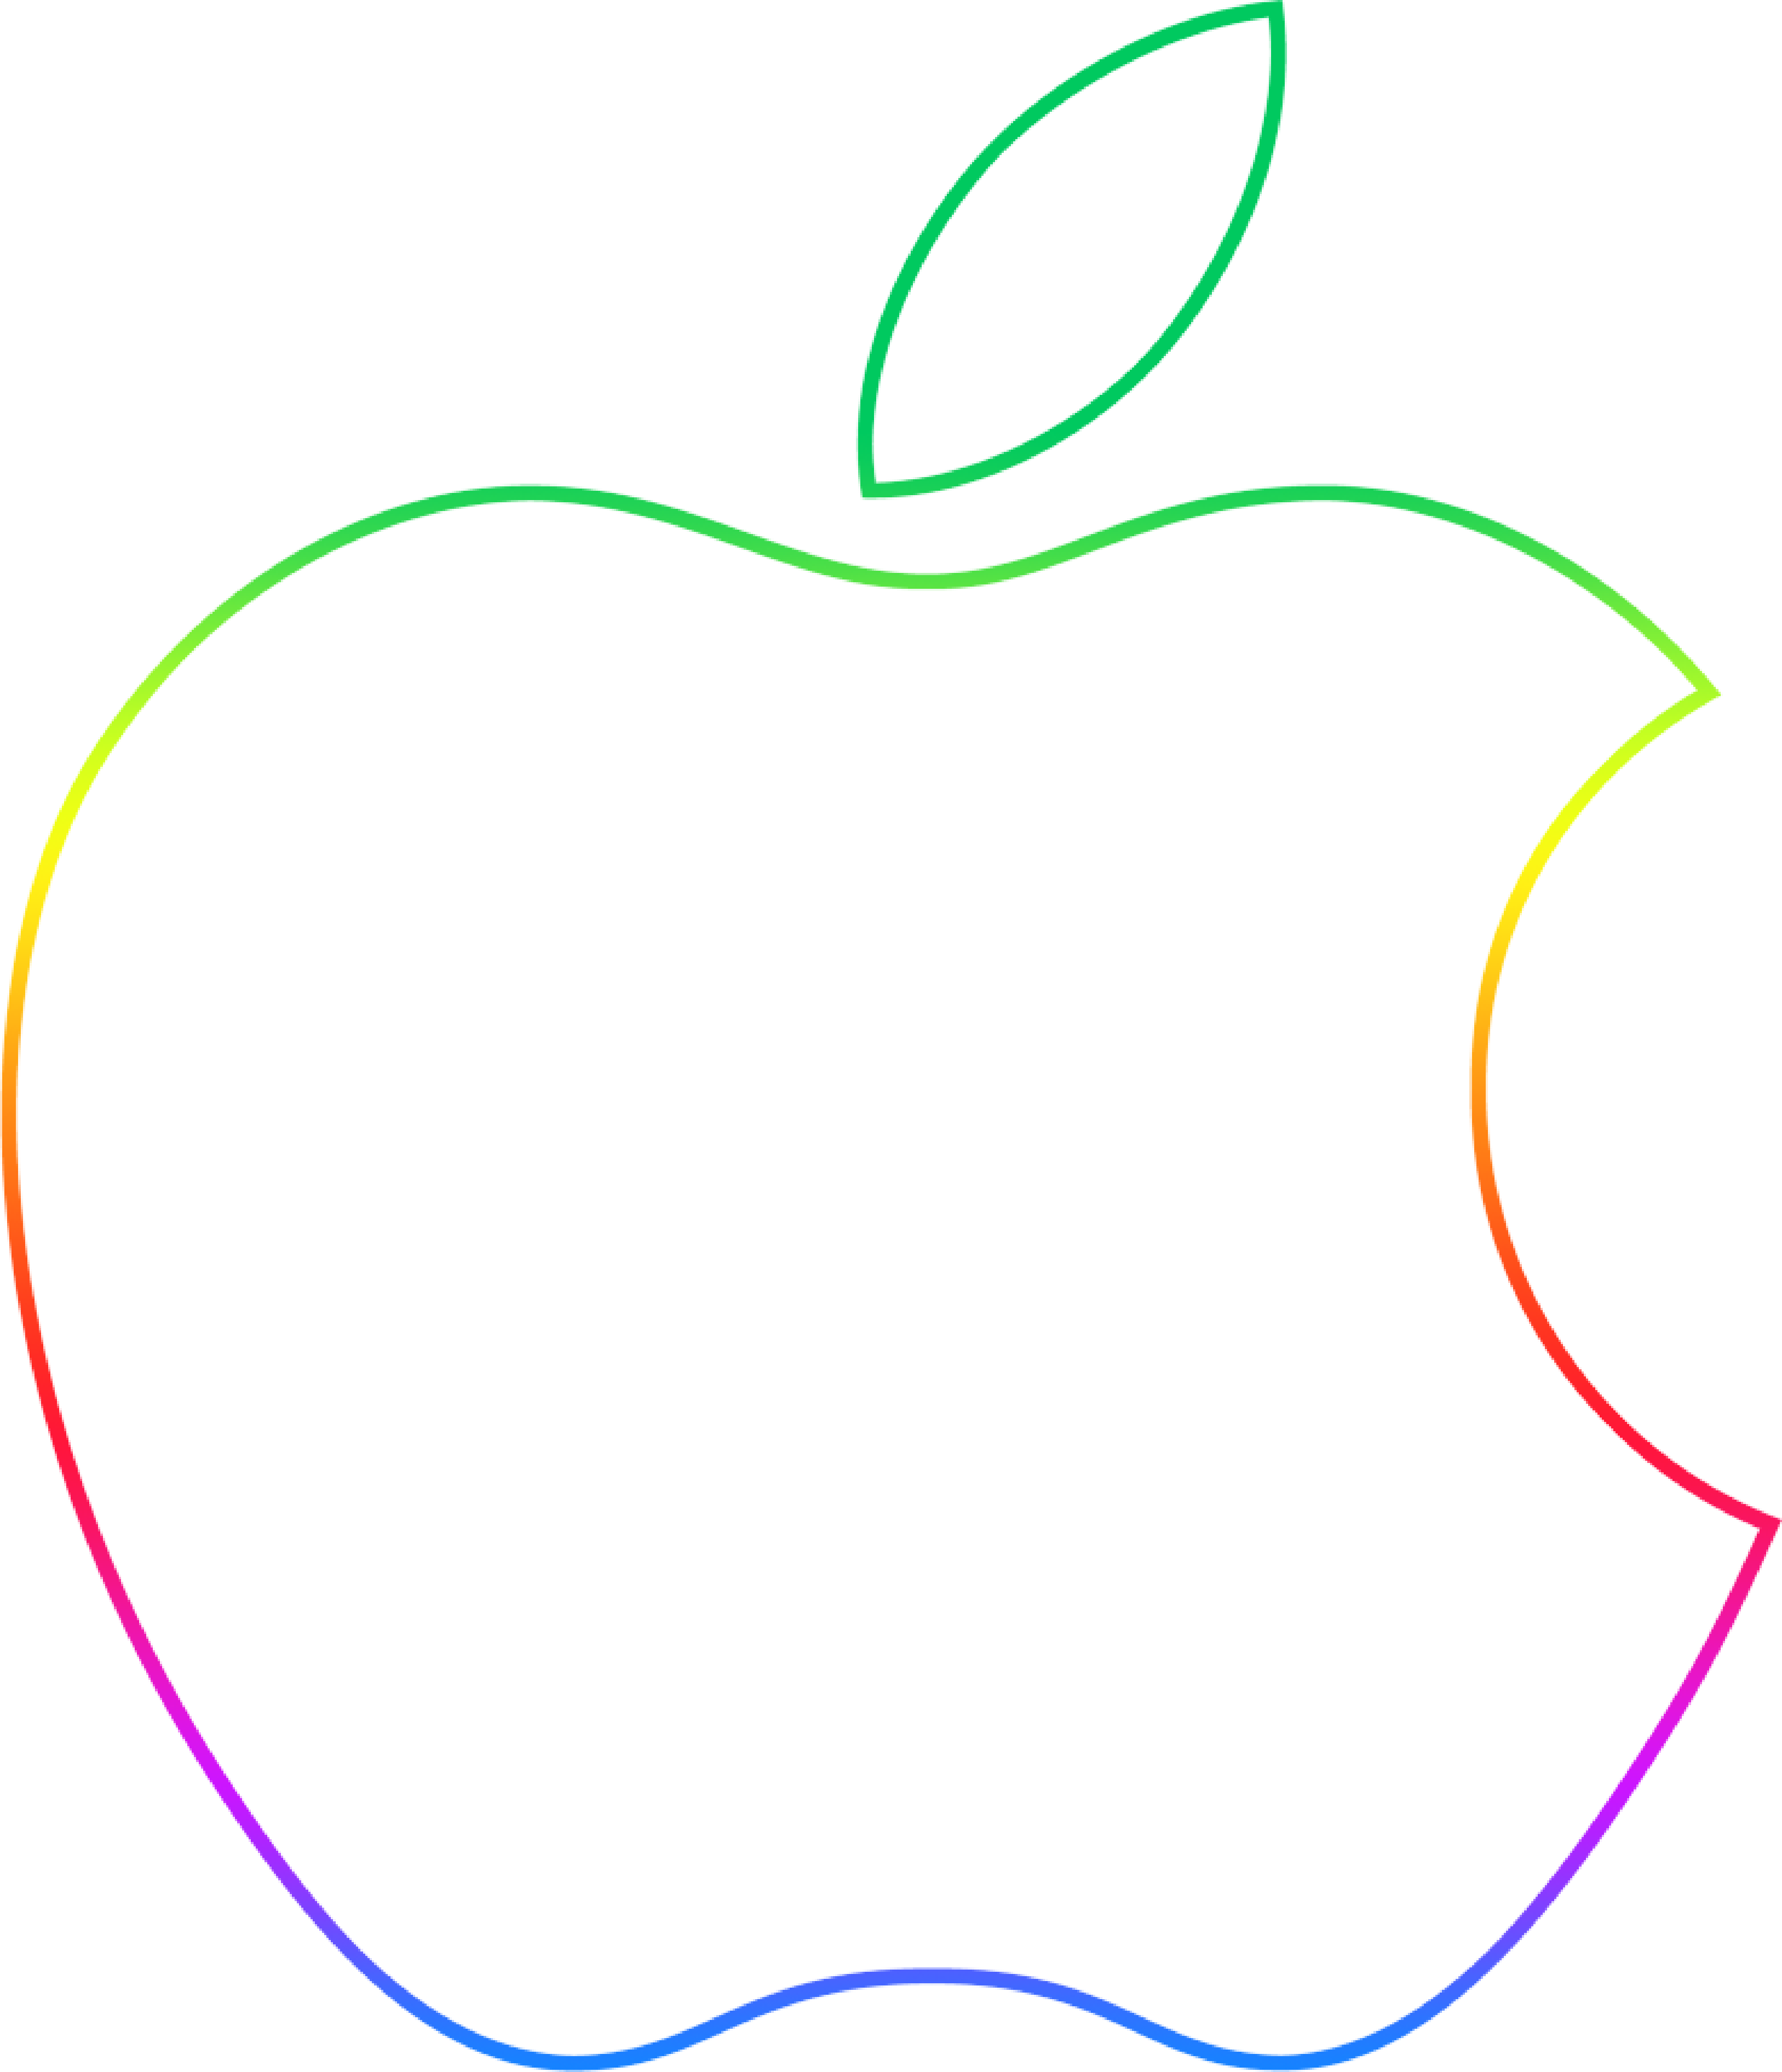 3254x3783 Apple Logo Vector 10 An Images Hub